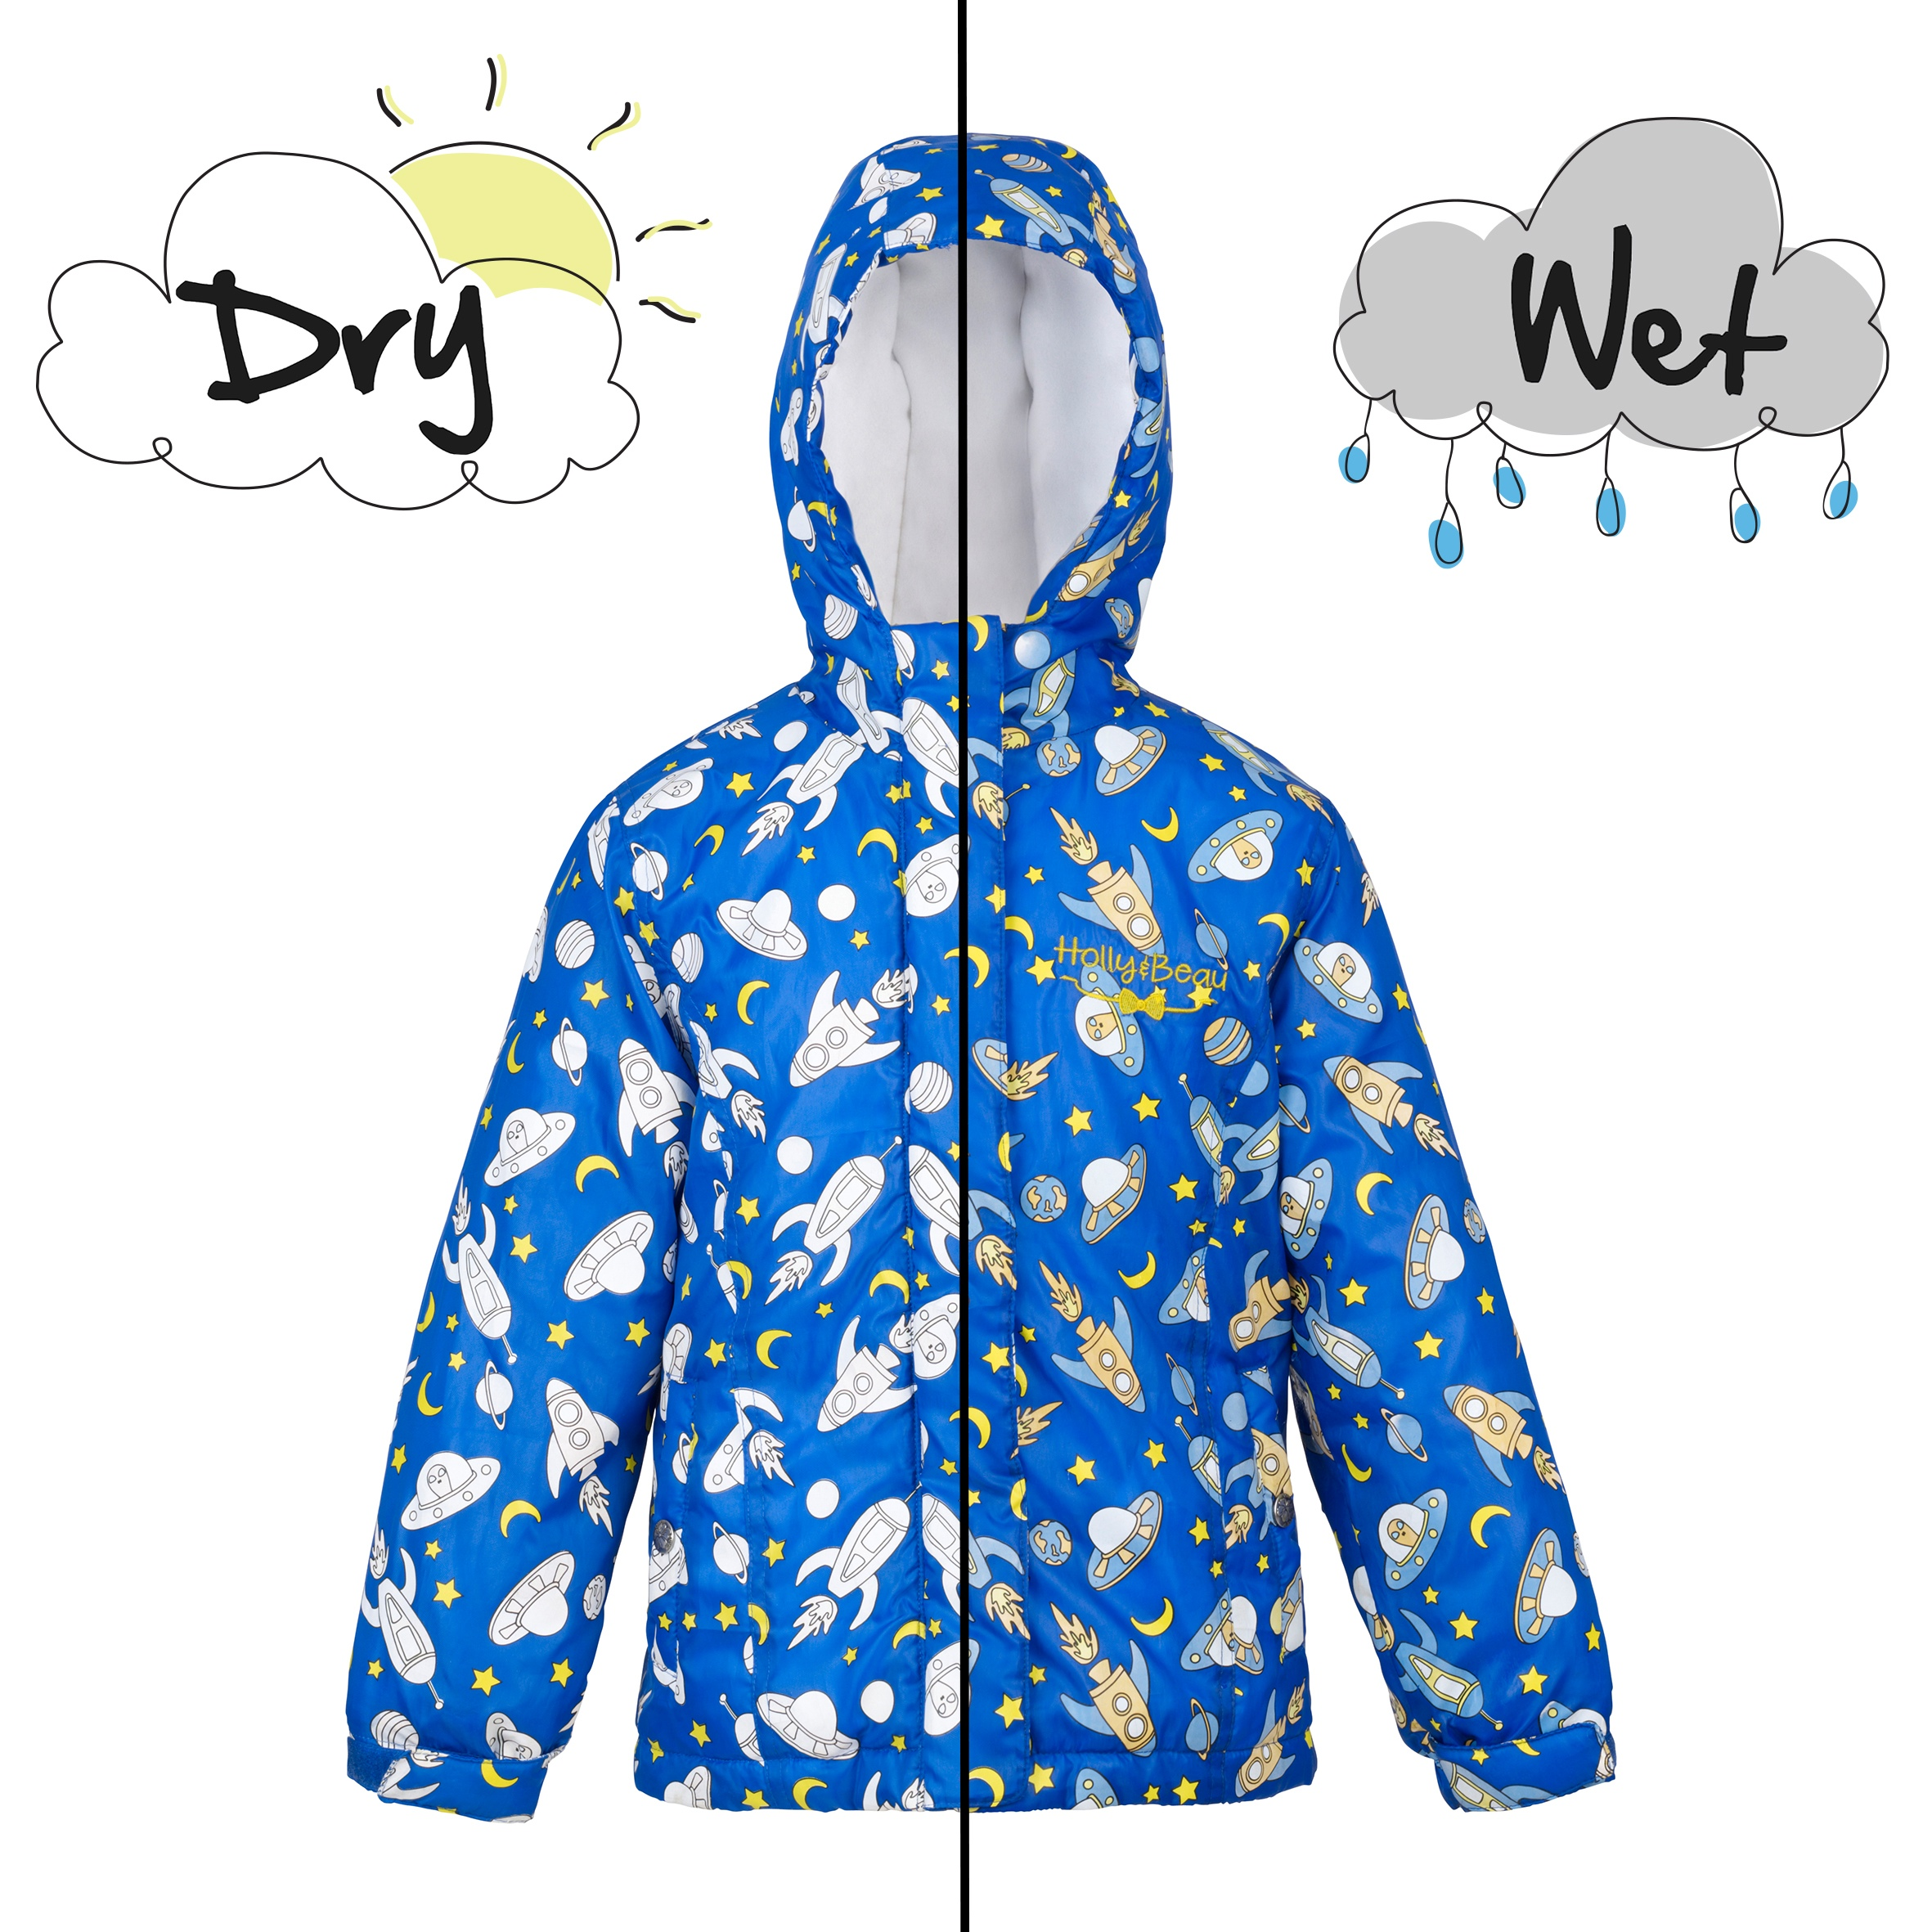 Boys space coat wet and dry